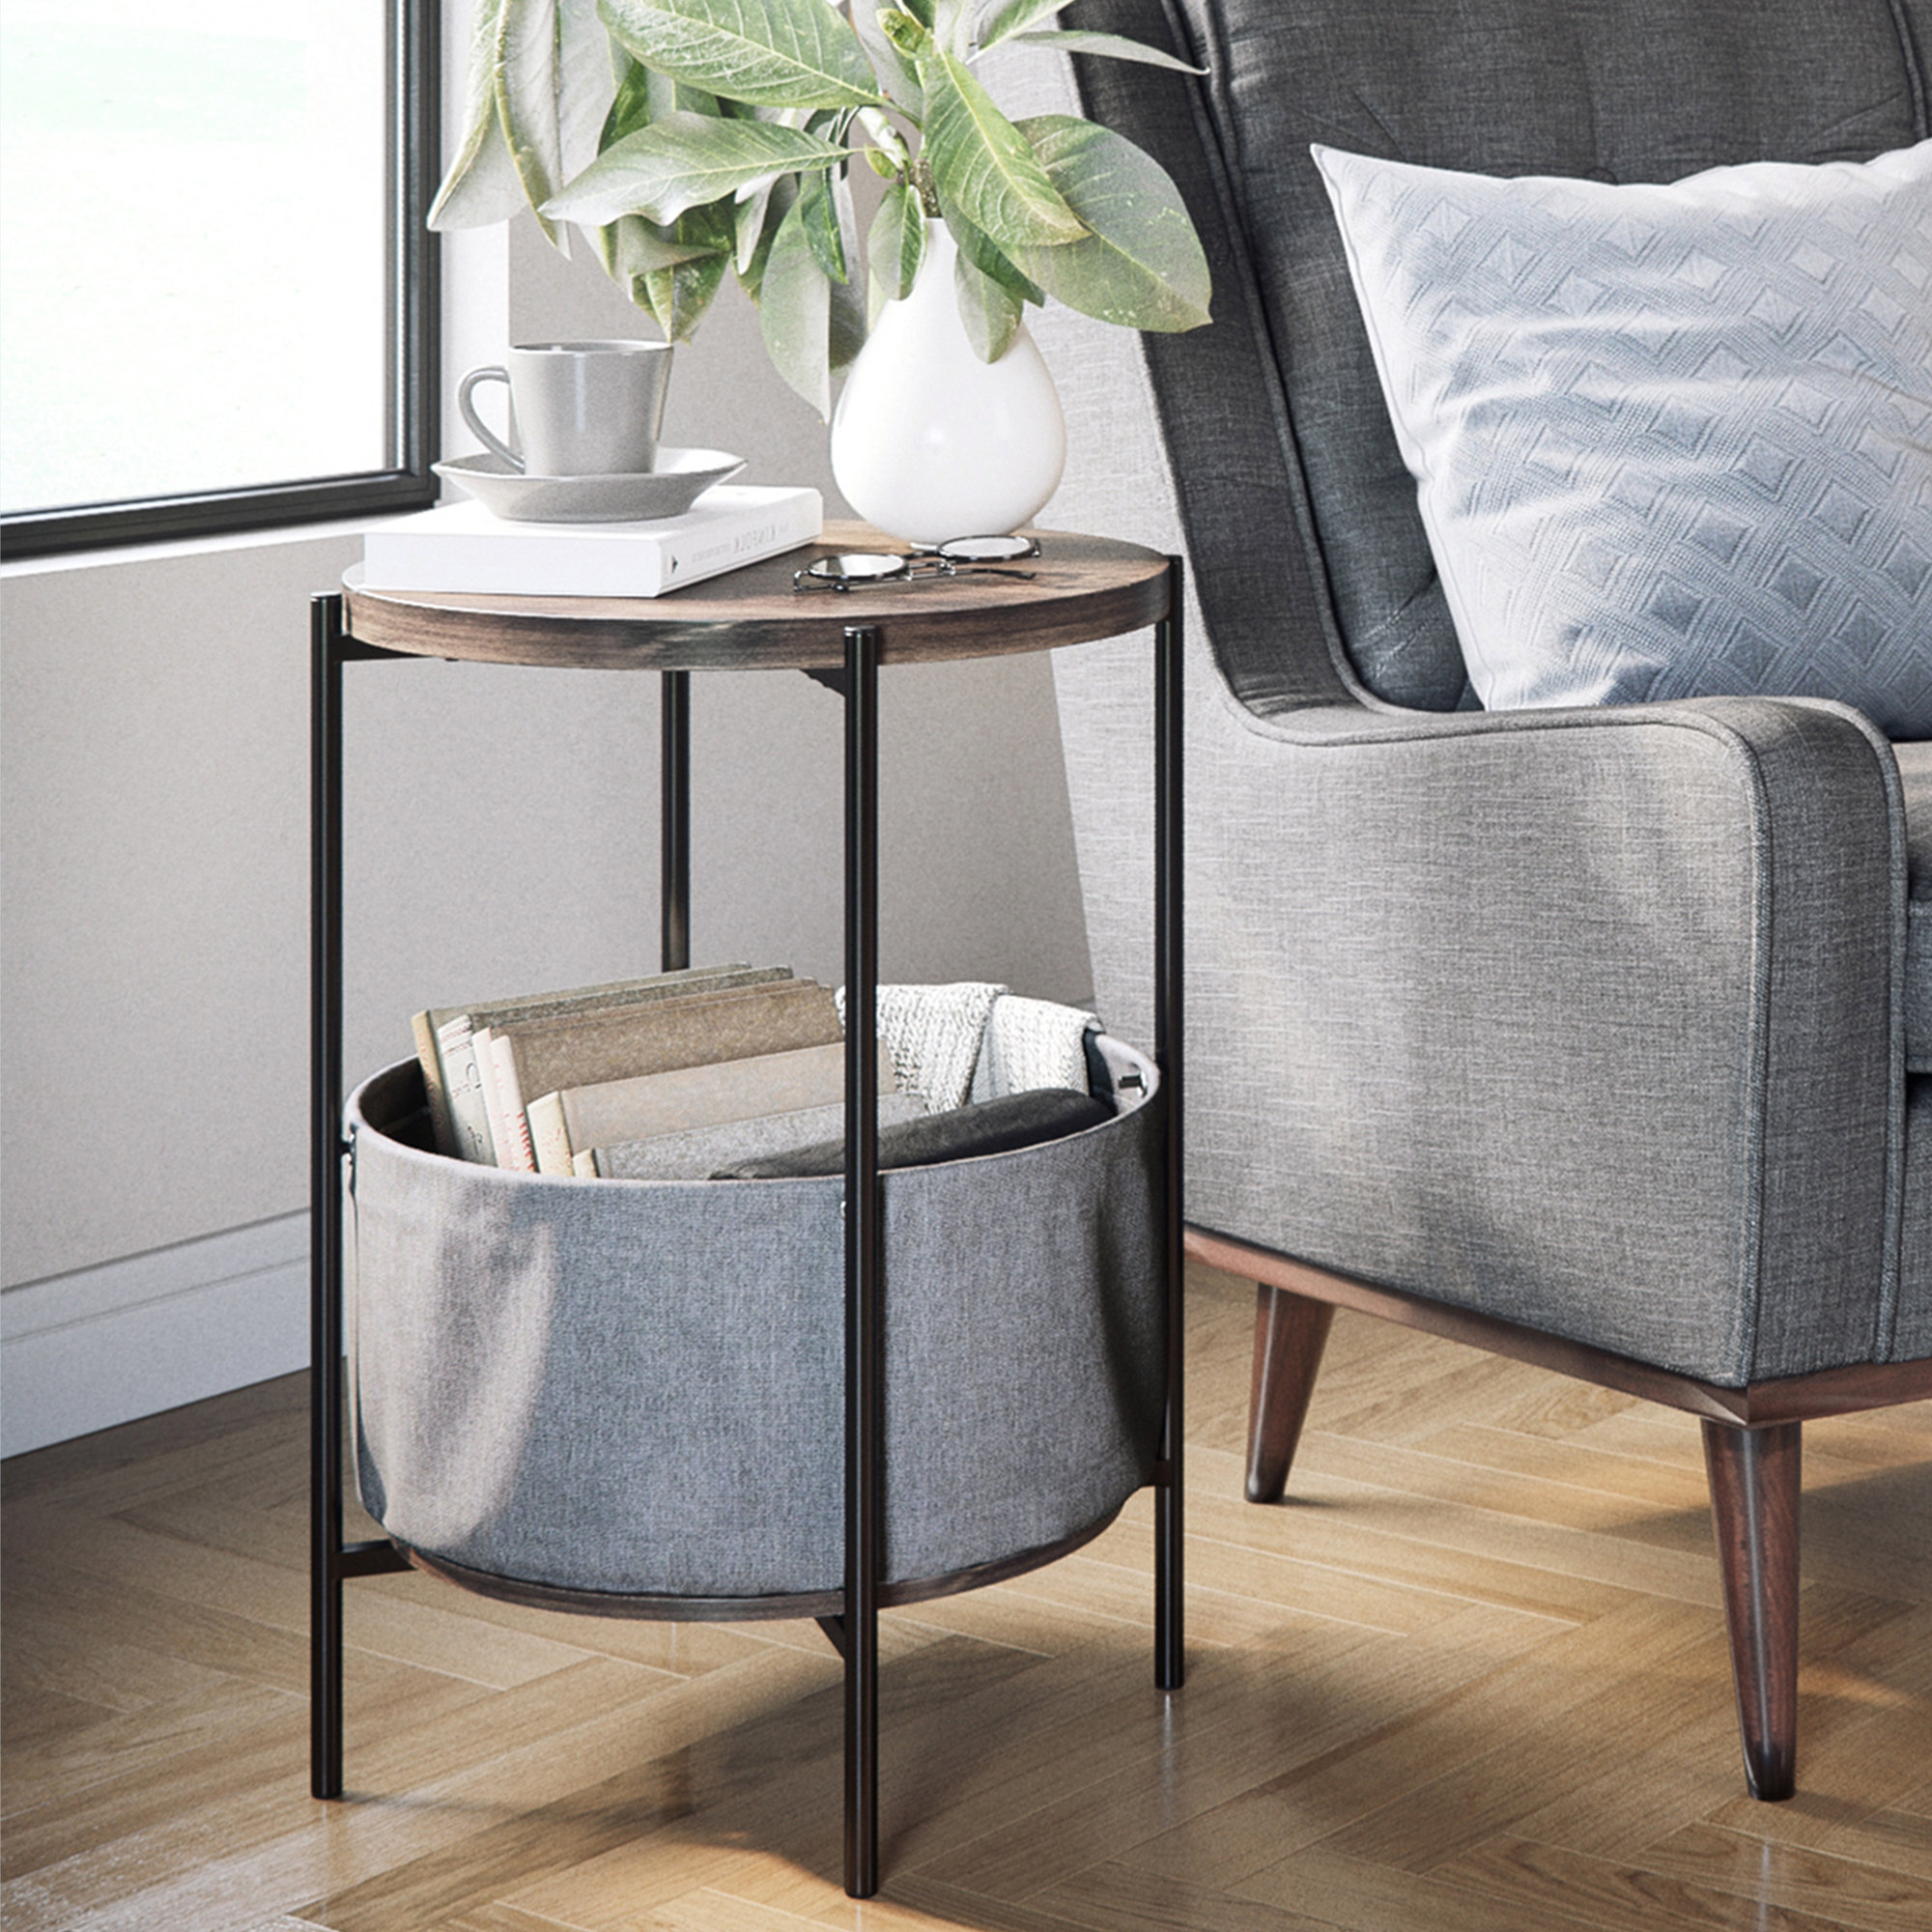 side table inches high bluxome end with storage room essentials metal patio accent quickview miniature lamps modern round wood coffee corner lamp tray west elm reclaimed drum